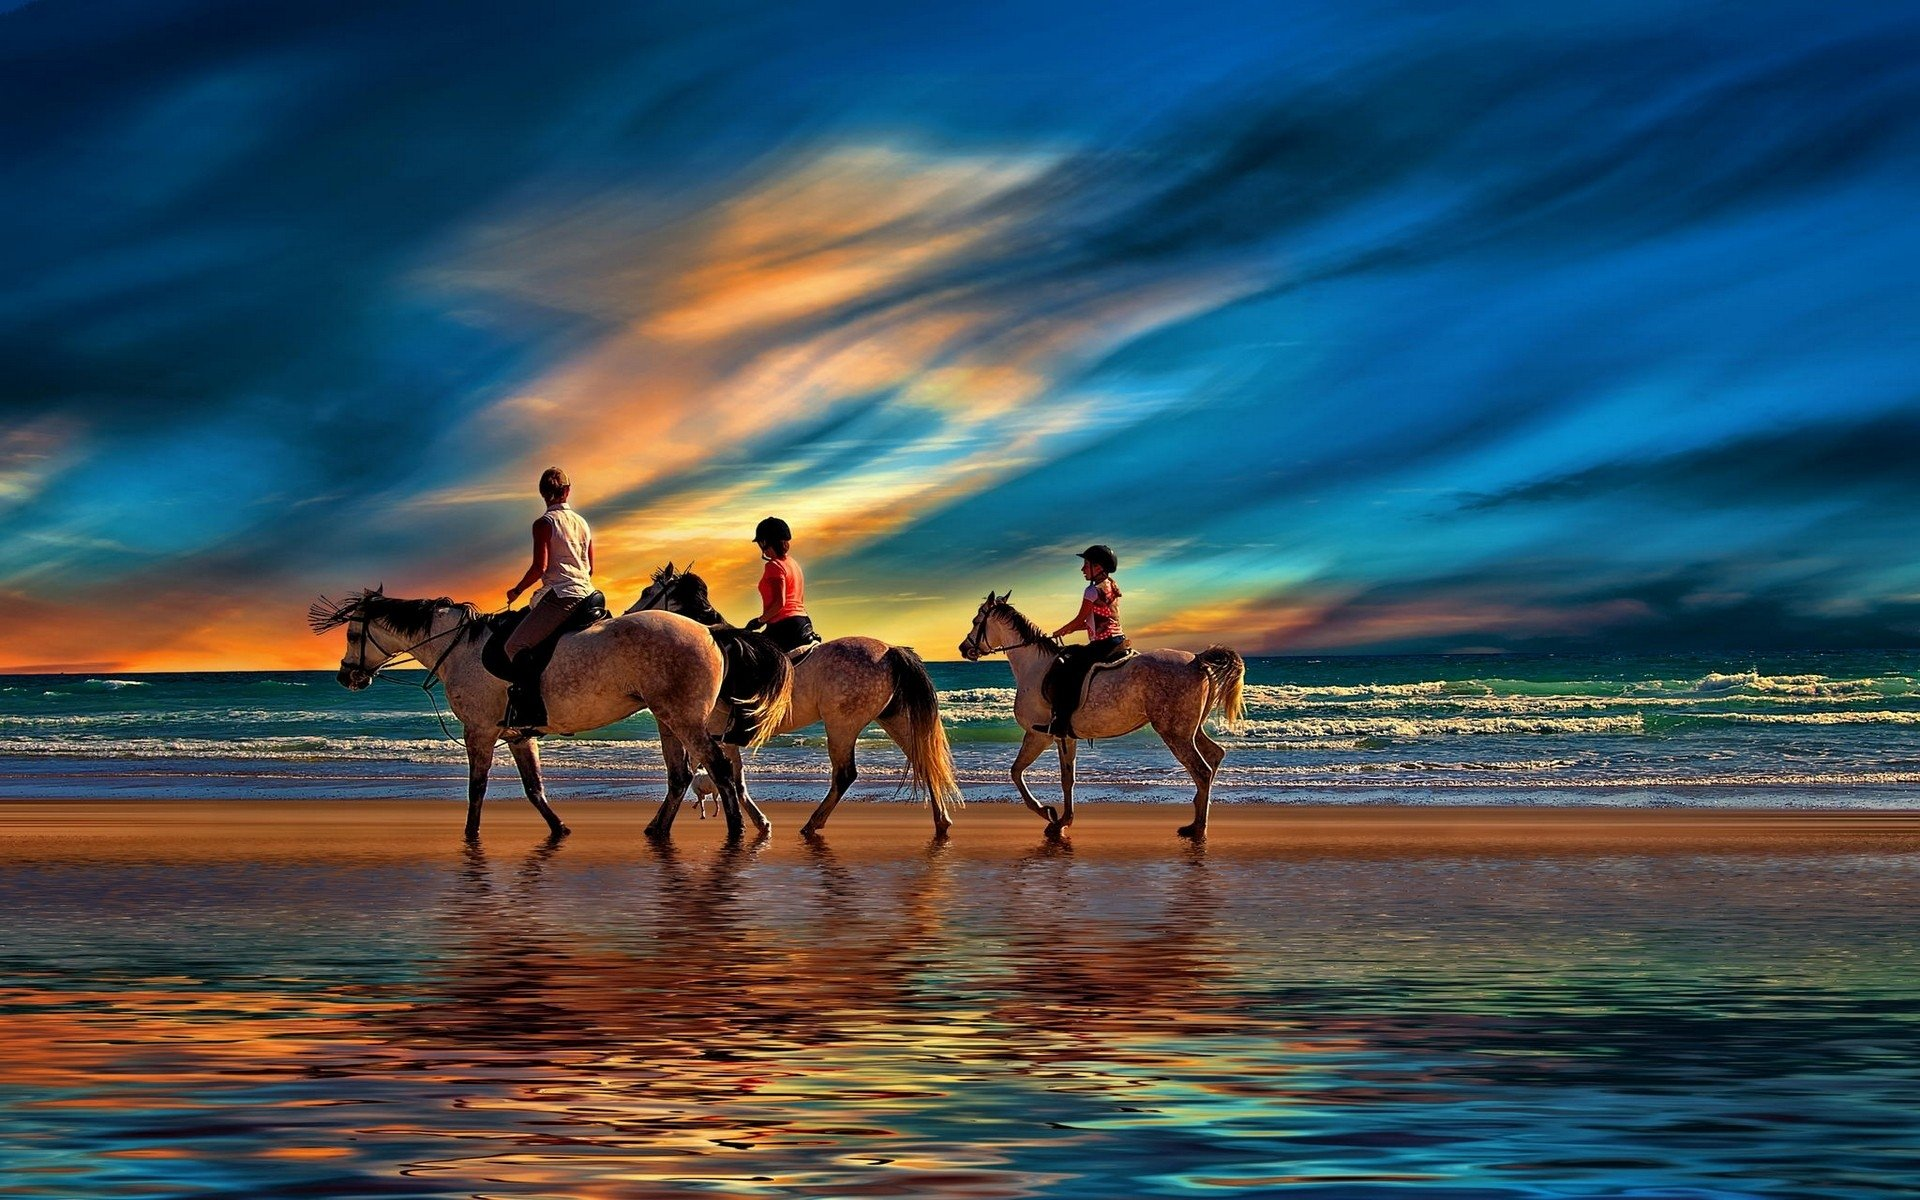 Ultra Hd Wallpaper Strand Riding On The Beach Full Hd Wallpaper And Background Image